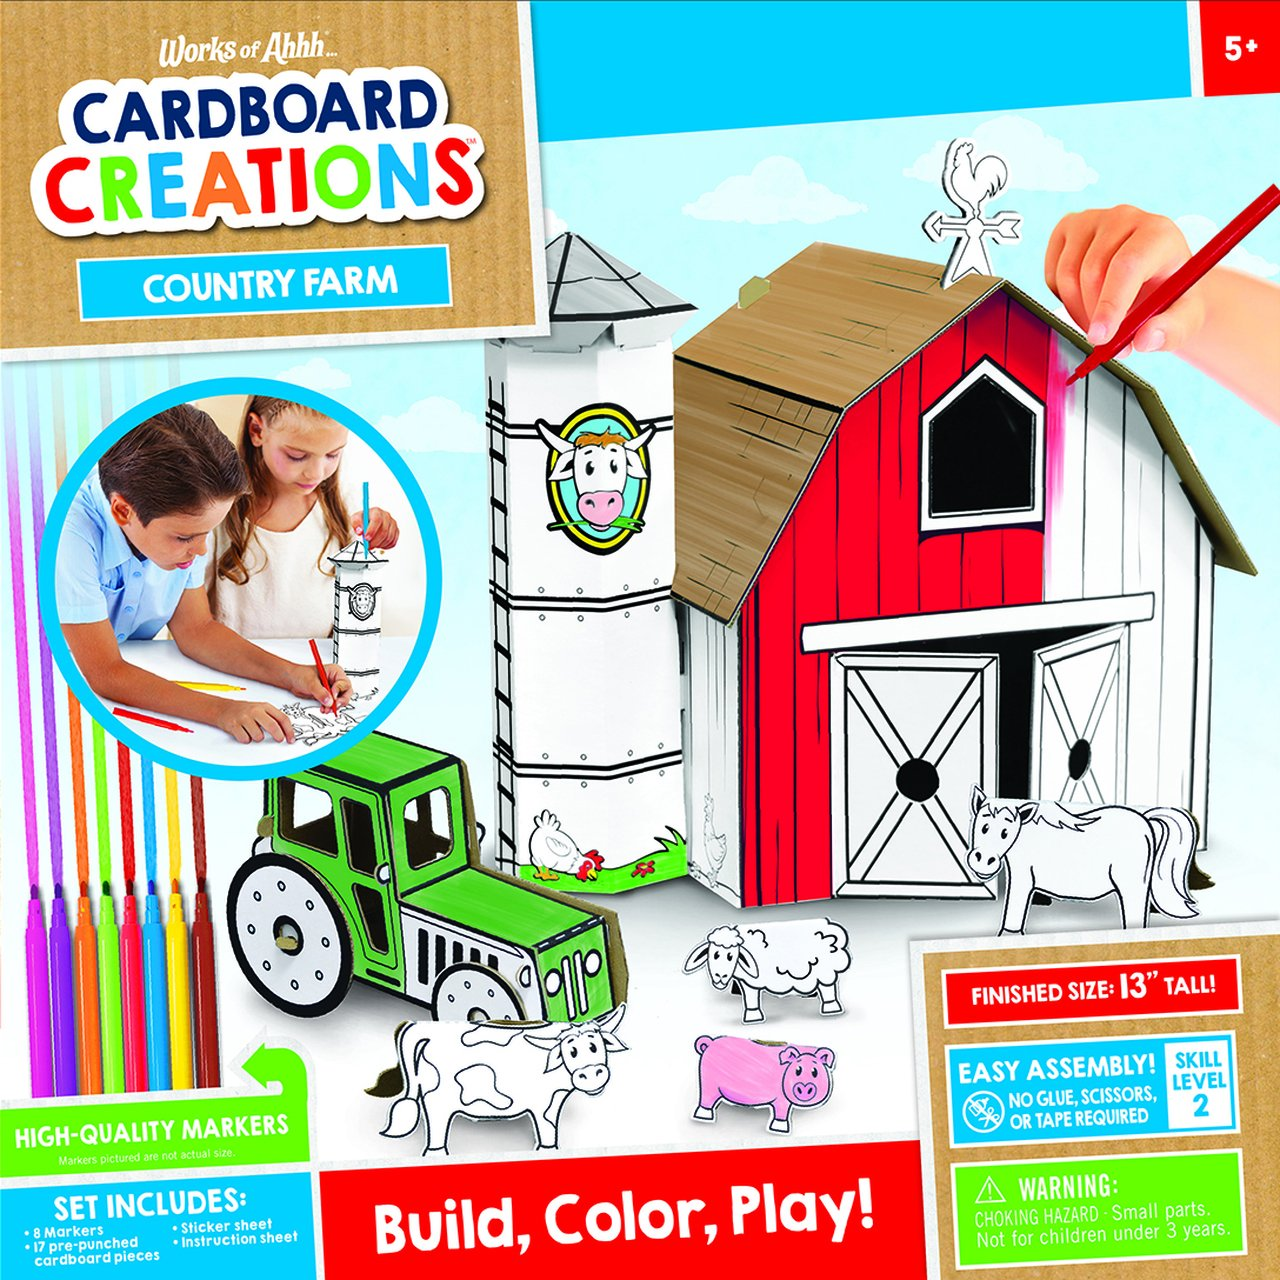 COUNTRY FARM BUILDABLE CARDBOARD CREATIONS KIT